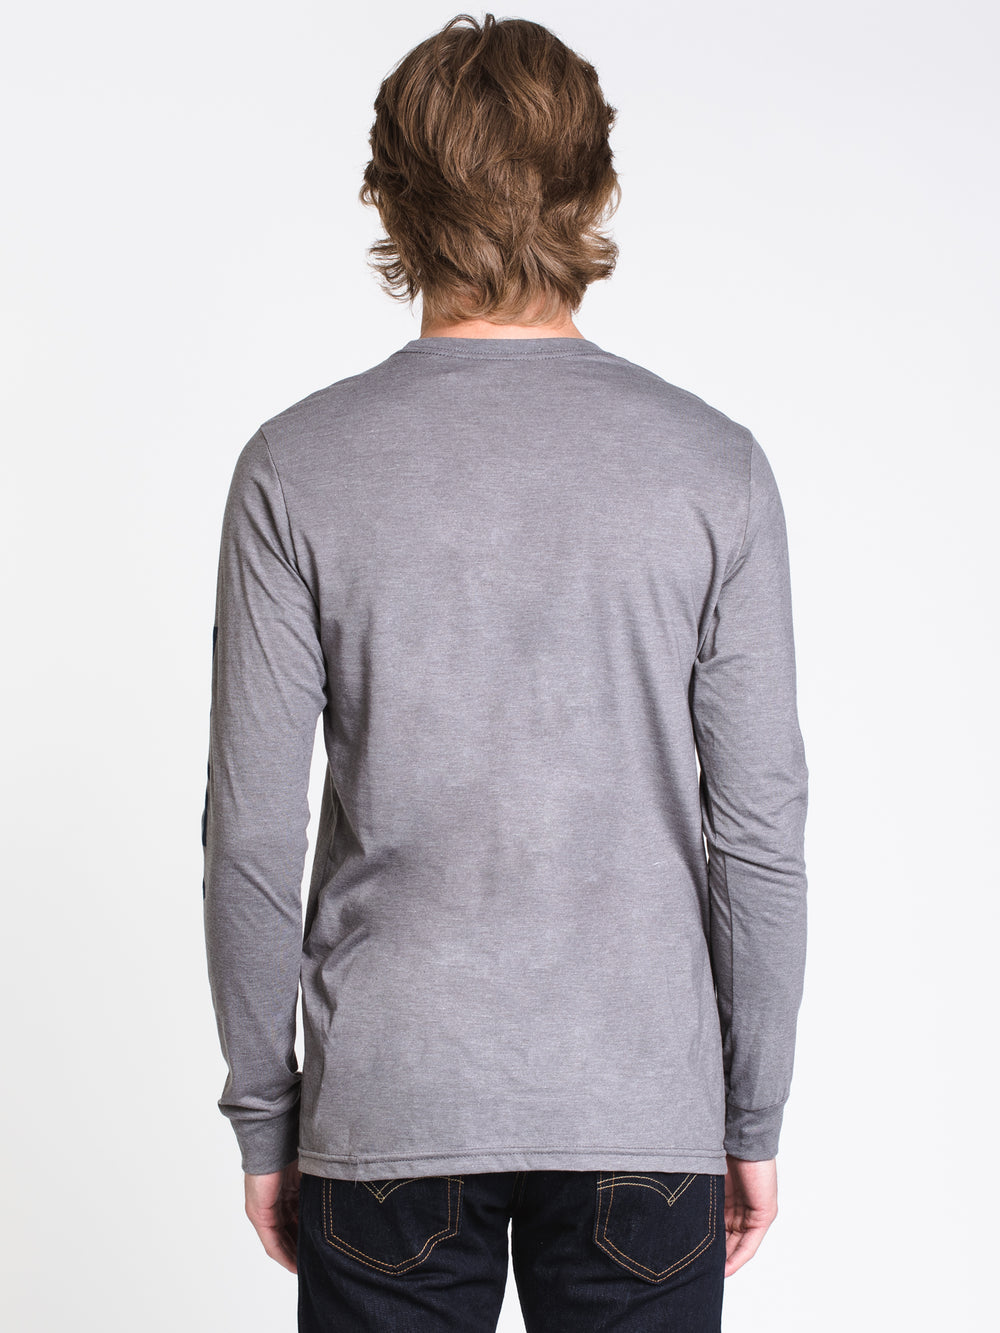 MENS BIG RVCA L/S T - GREY NOISE